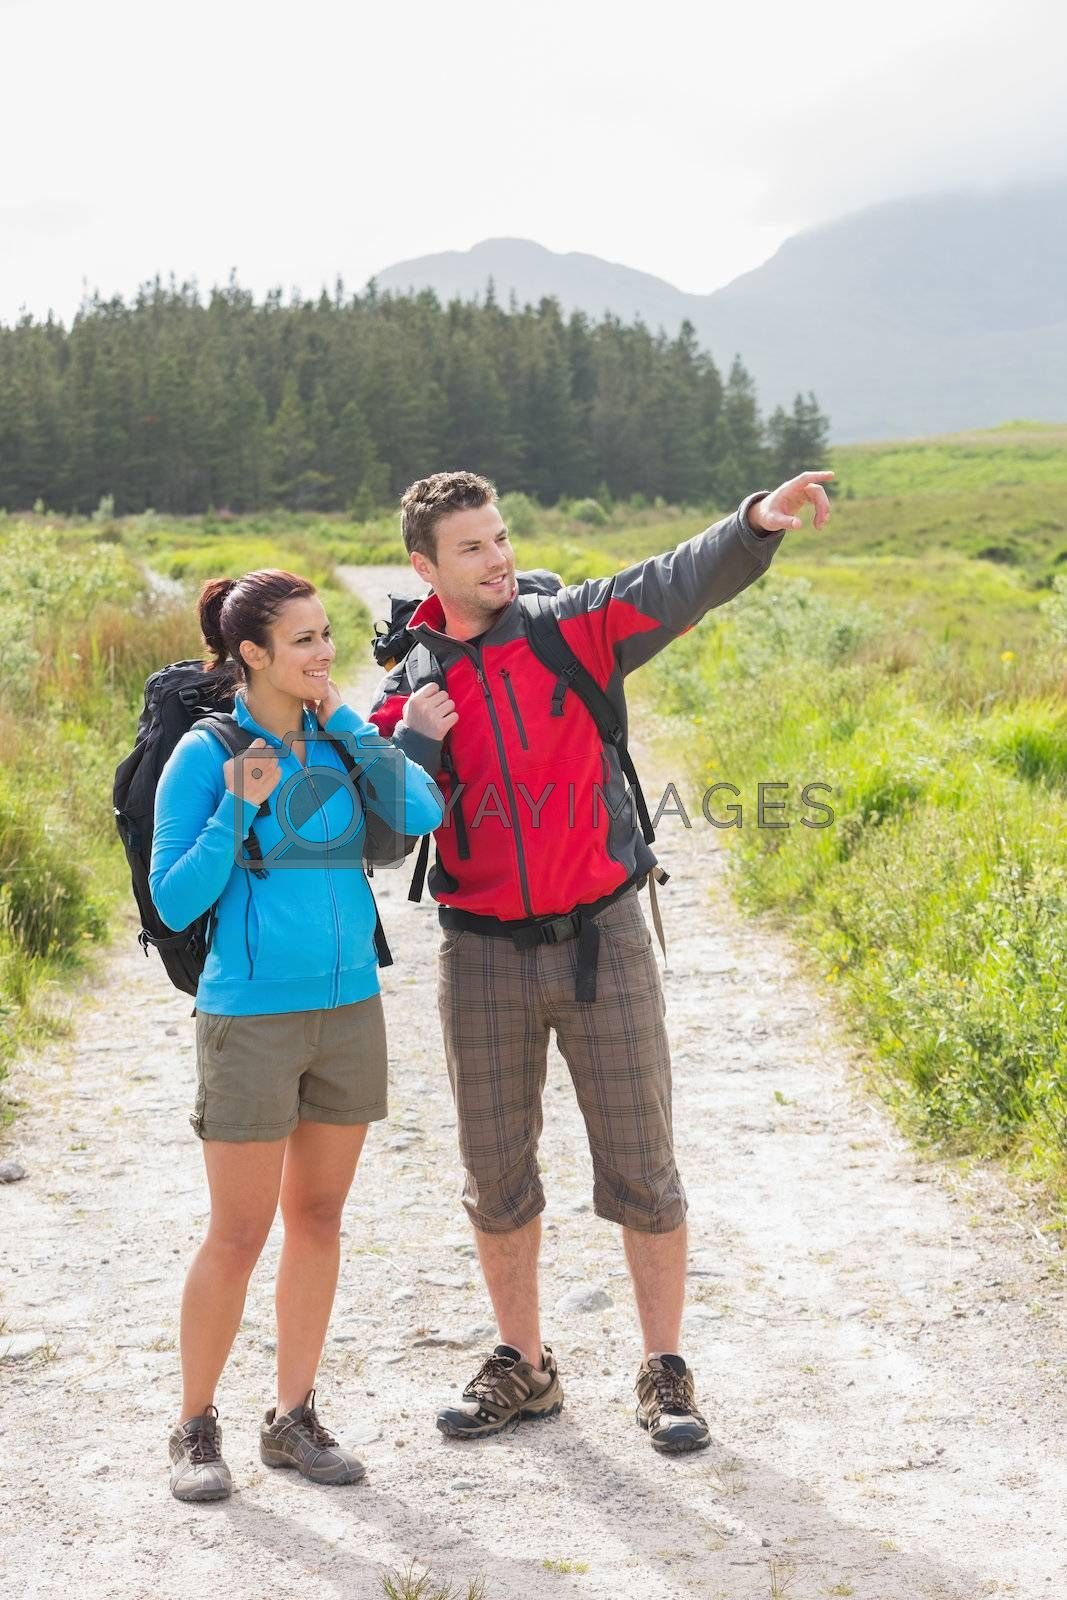 Hikers with backpacks standing on country trail by Wavebreakmedia